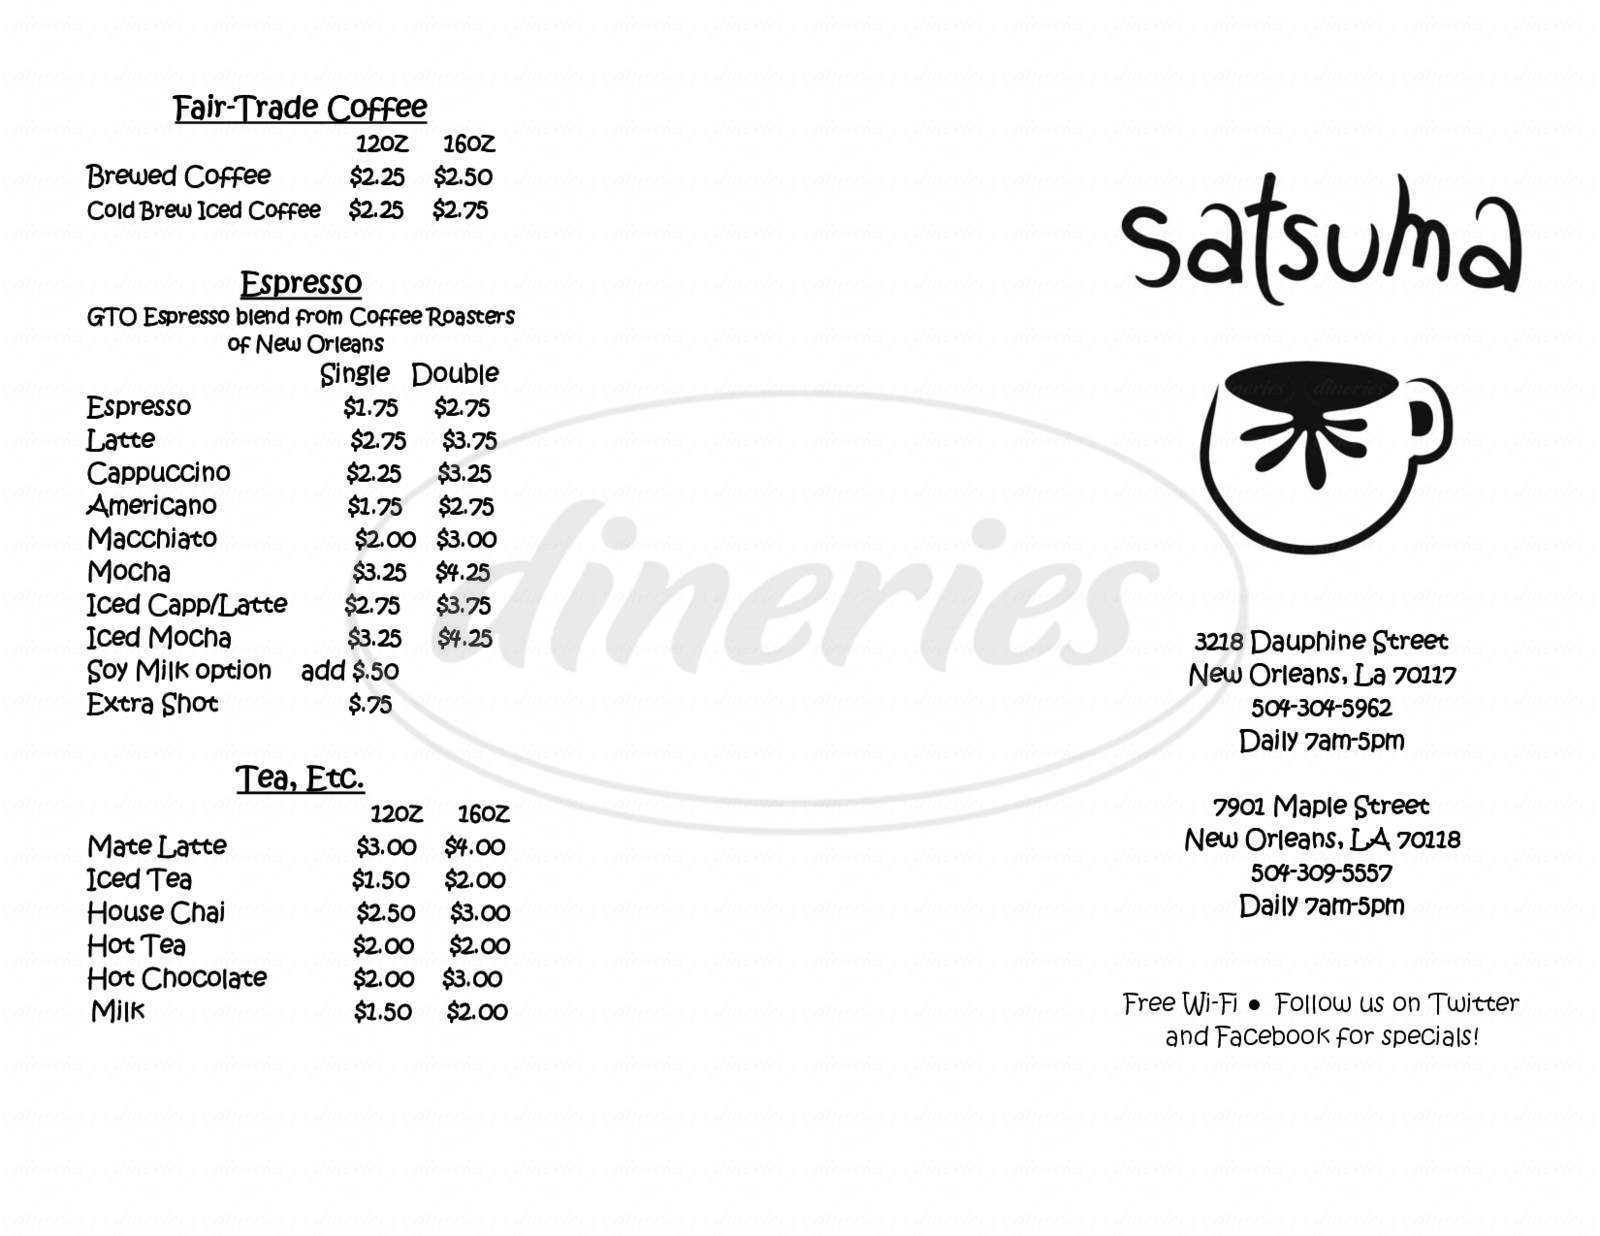 menu for Satsuma Café